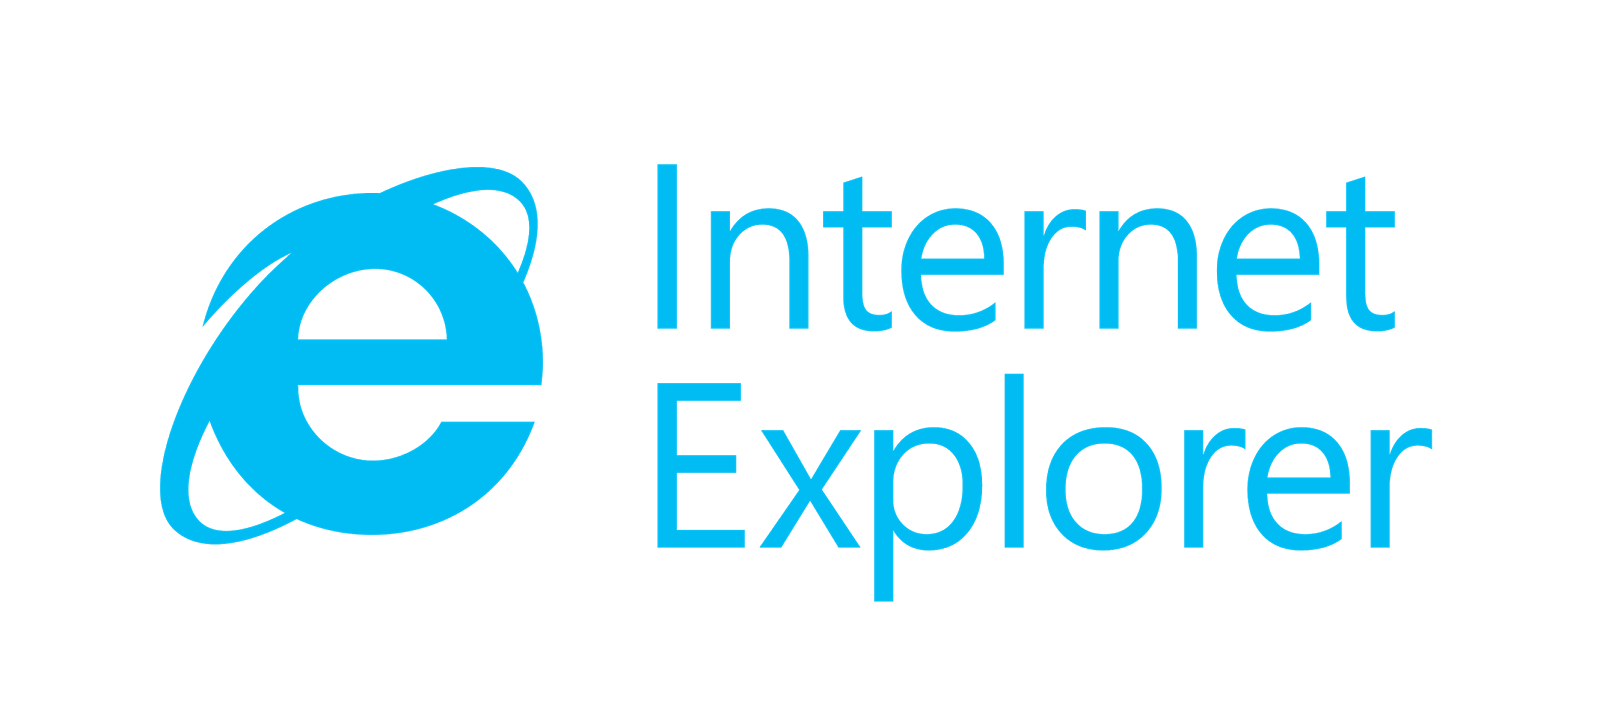 Phone Internet Explorer Download For Android Phones internet explorer 2 1 apk file download apkmania download